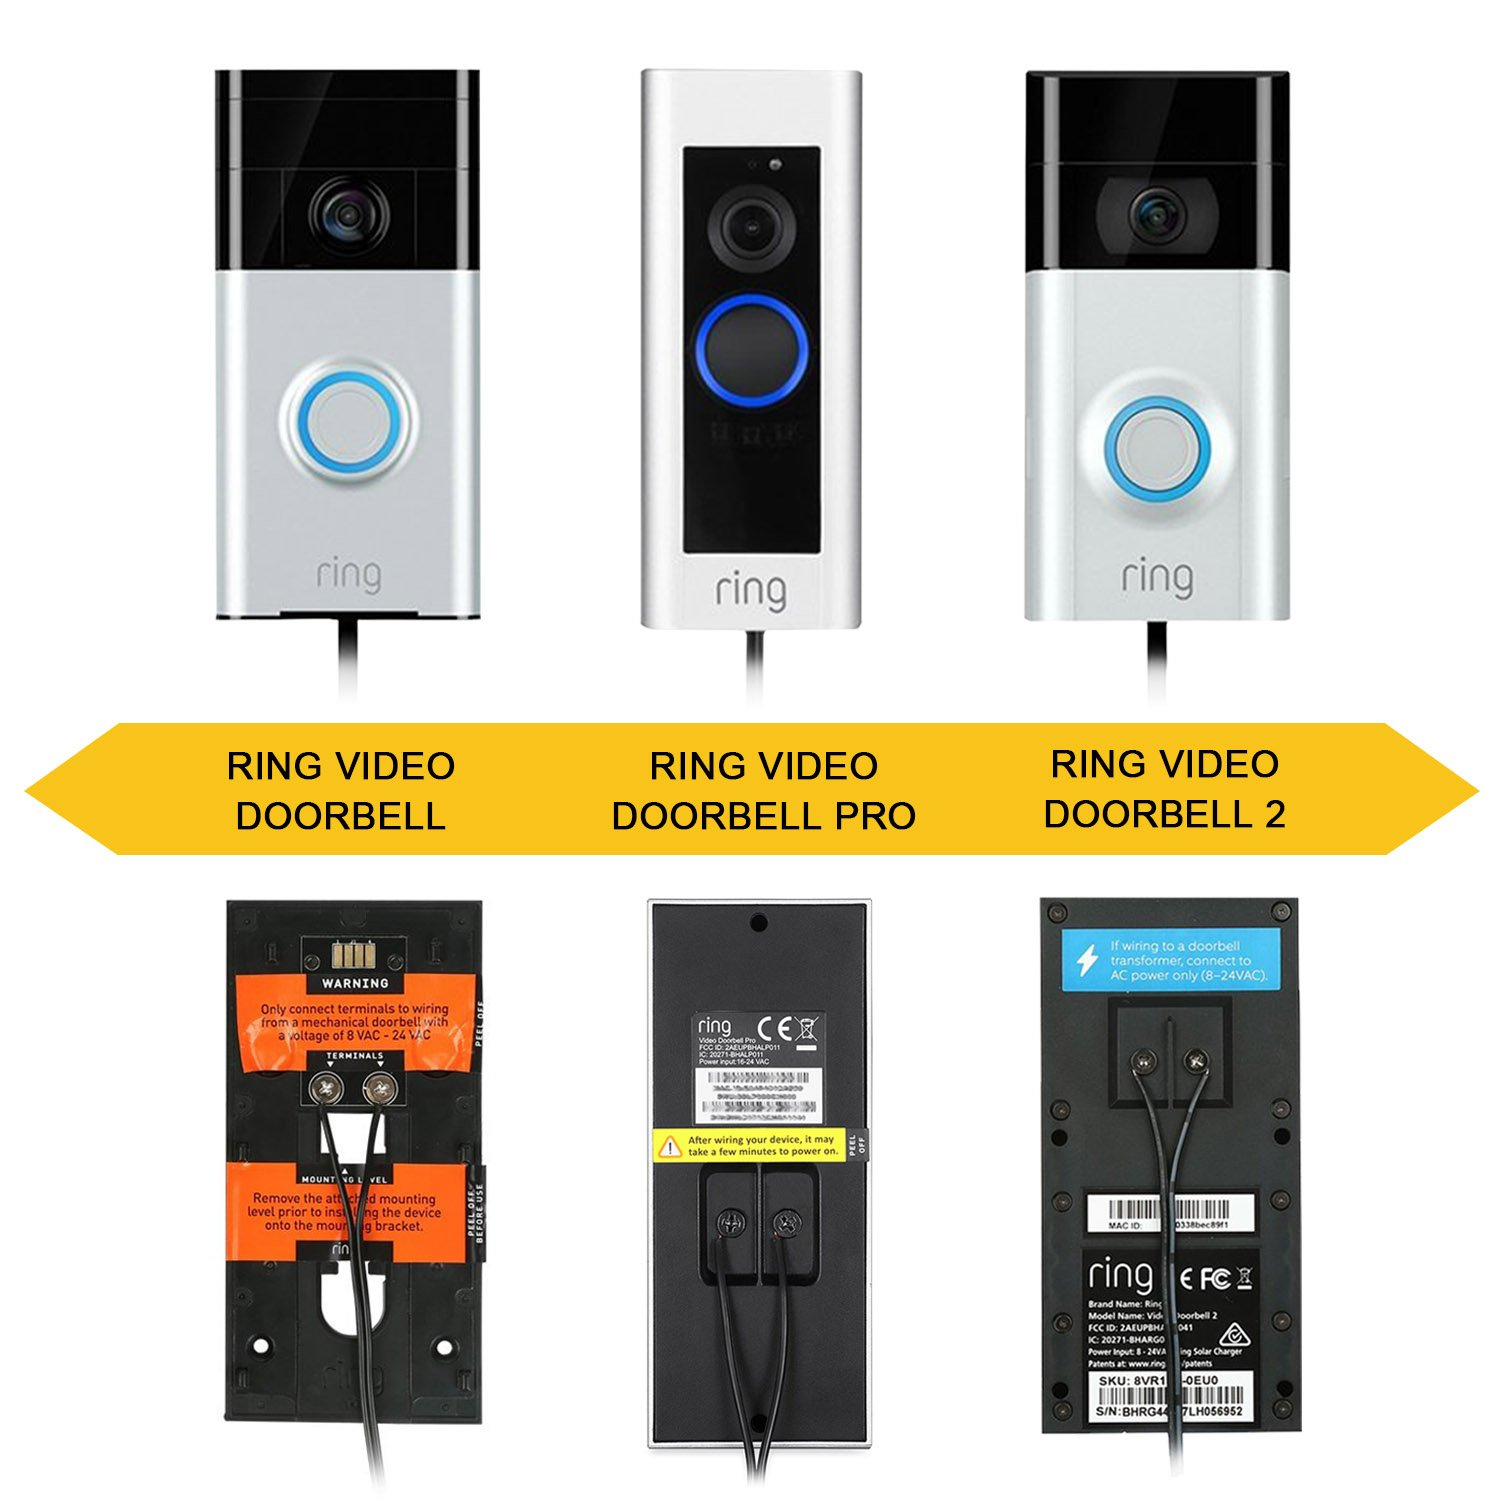 Power Adapter for RING Doorbell, UL Certificated Power Supply for RING Video Doorbell, RING Video Doorbell 2 & RING Video Doorbell Pro Battery Charger by ODELENWA (Image #3)